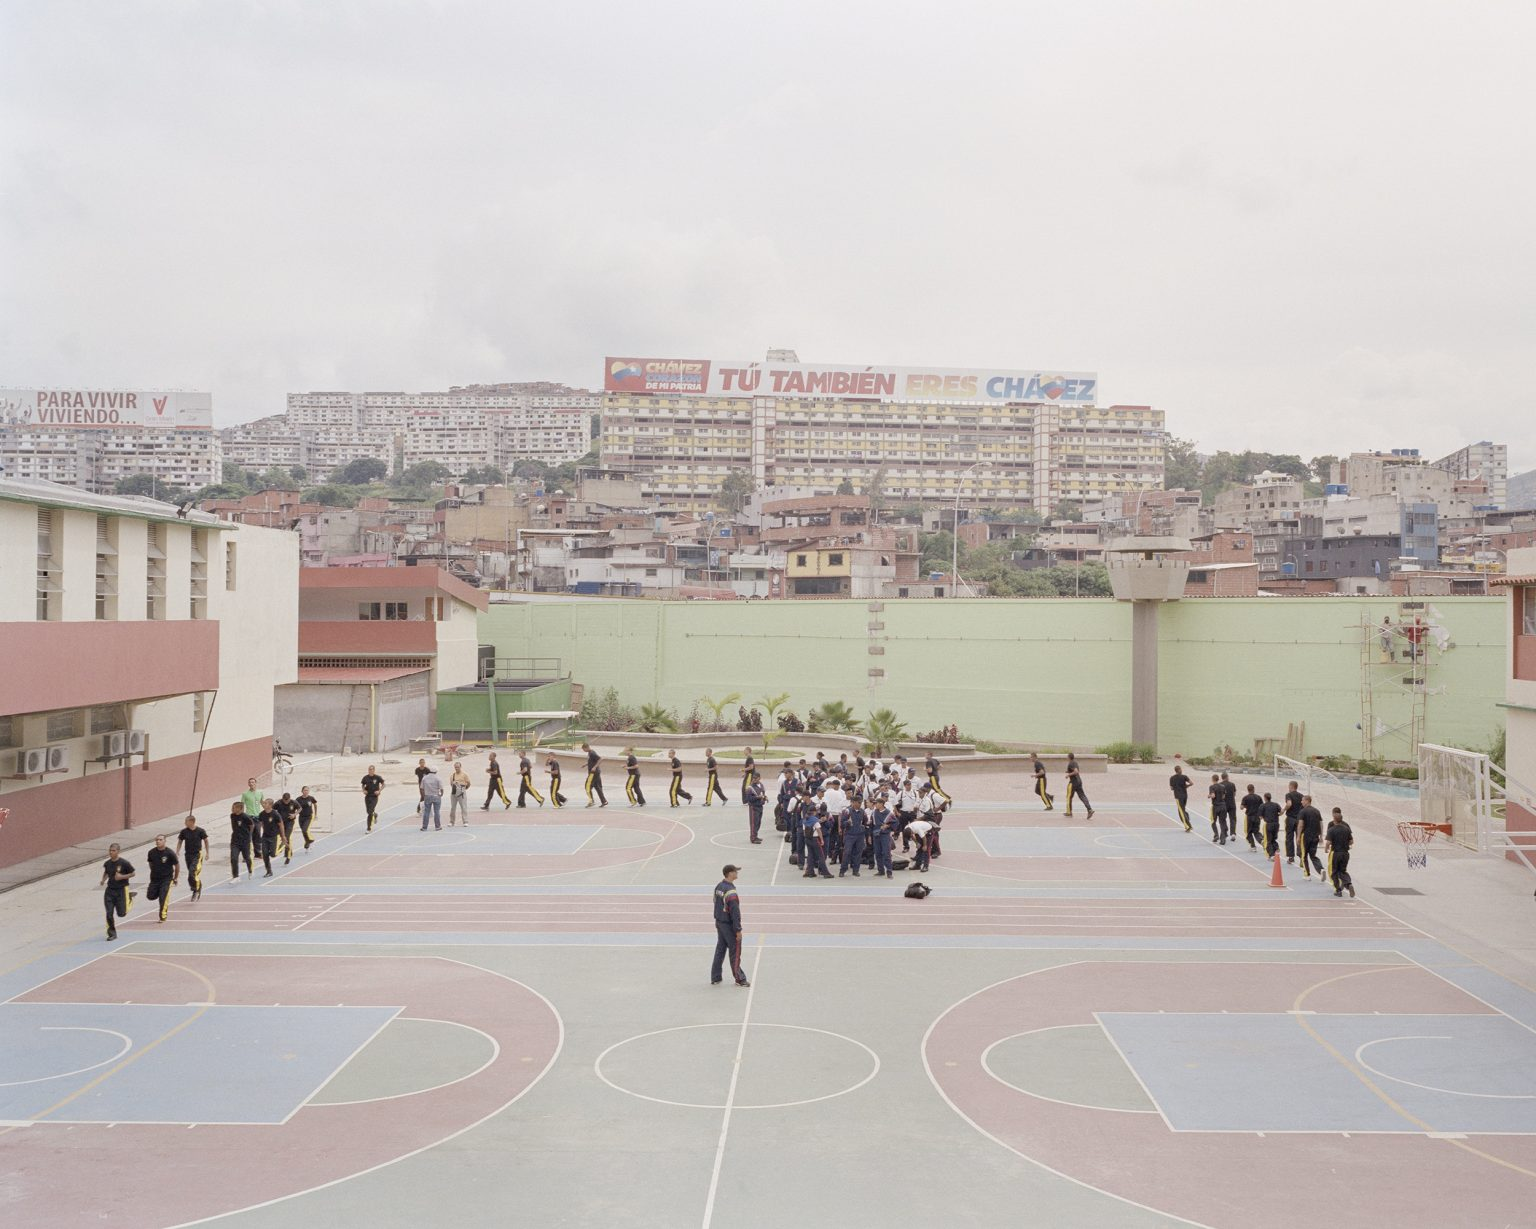 The experimental school of police, born with the gouvernment of Chavez. The school is based on the idea that violence is the last recourse, the student are prepared also in sociology and psicology.